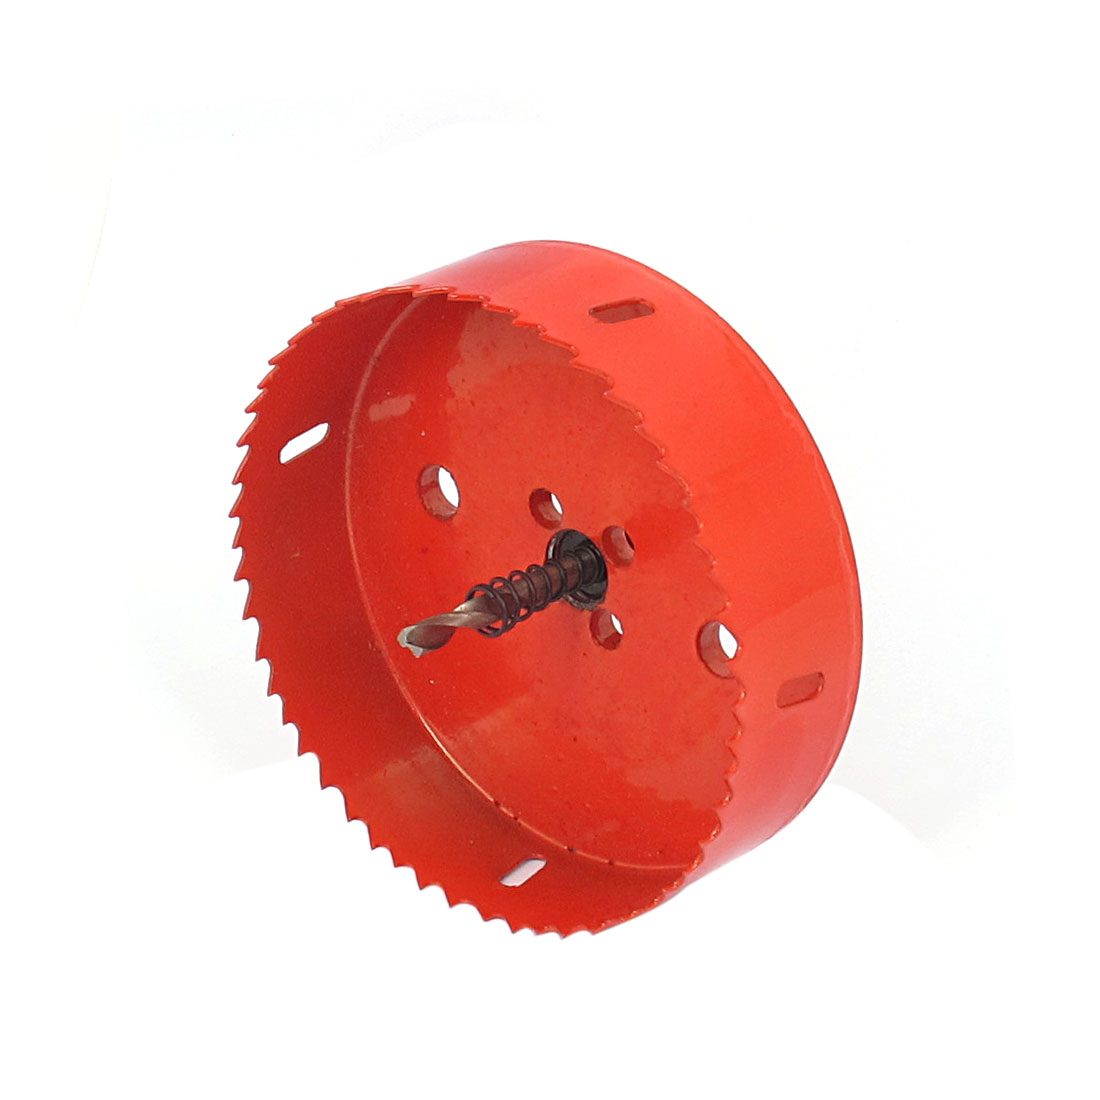 6mm Drill Bit 125mm Cutting Diameter Hole Saw Red for Drilling Wood